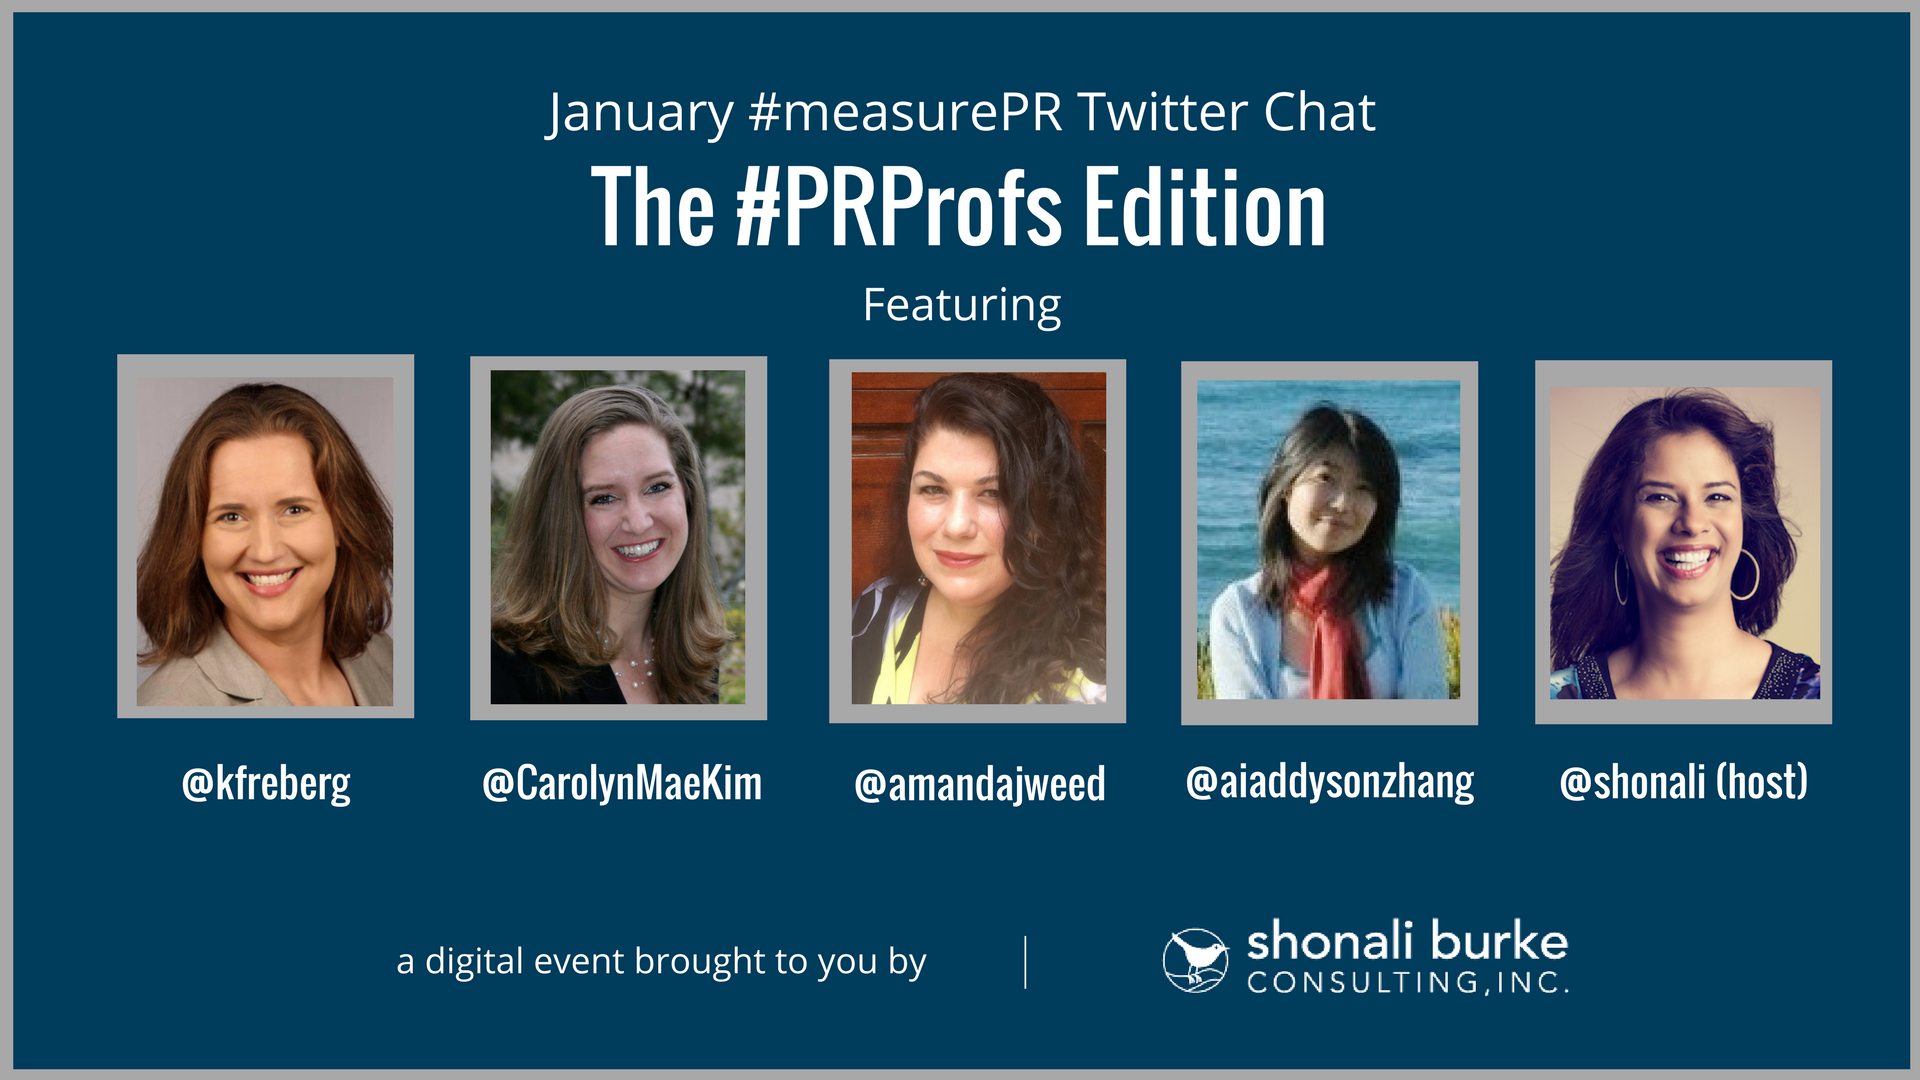 #measurePR Recap (January 2018): The #PRProfs Edition